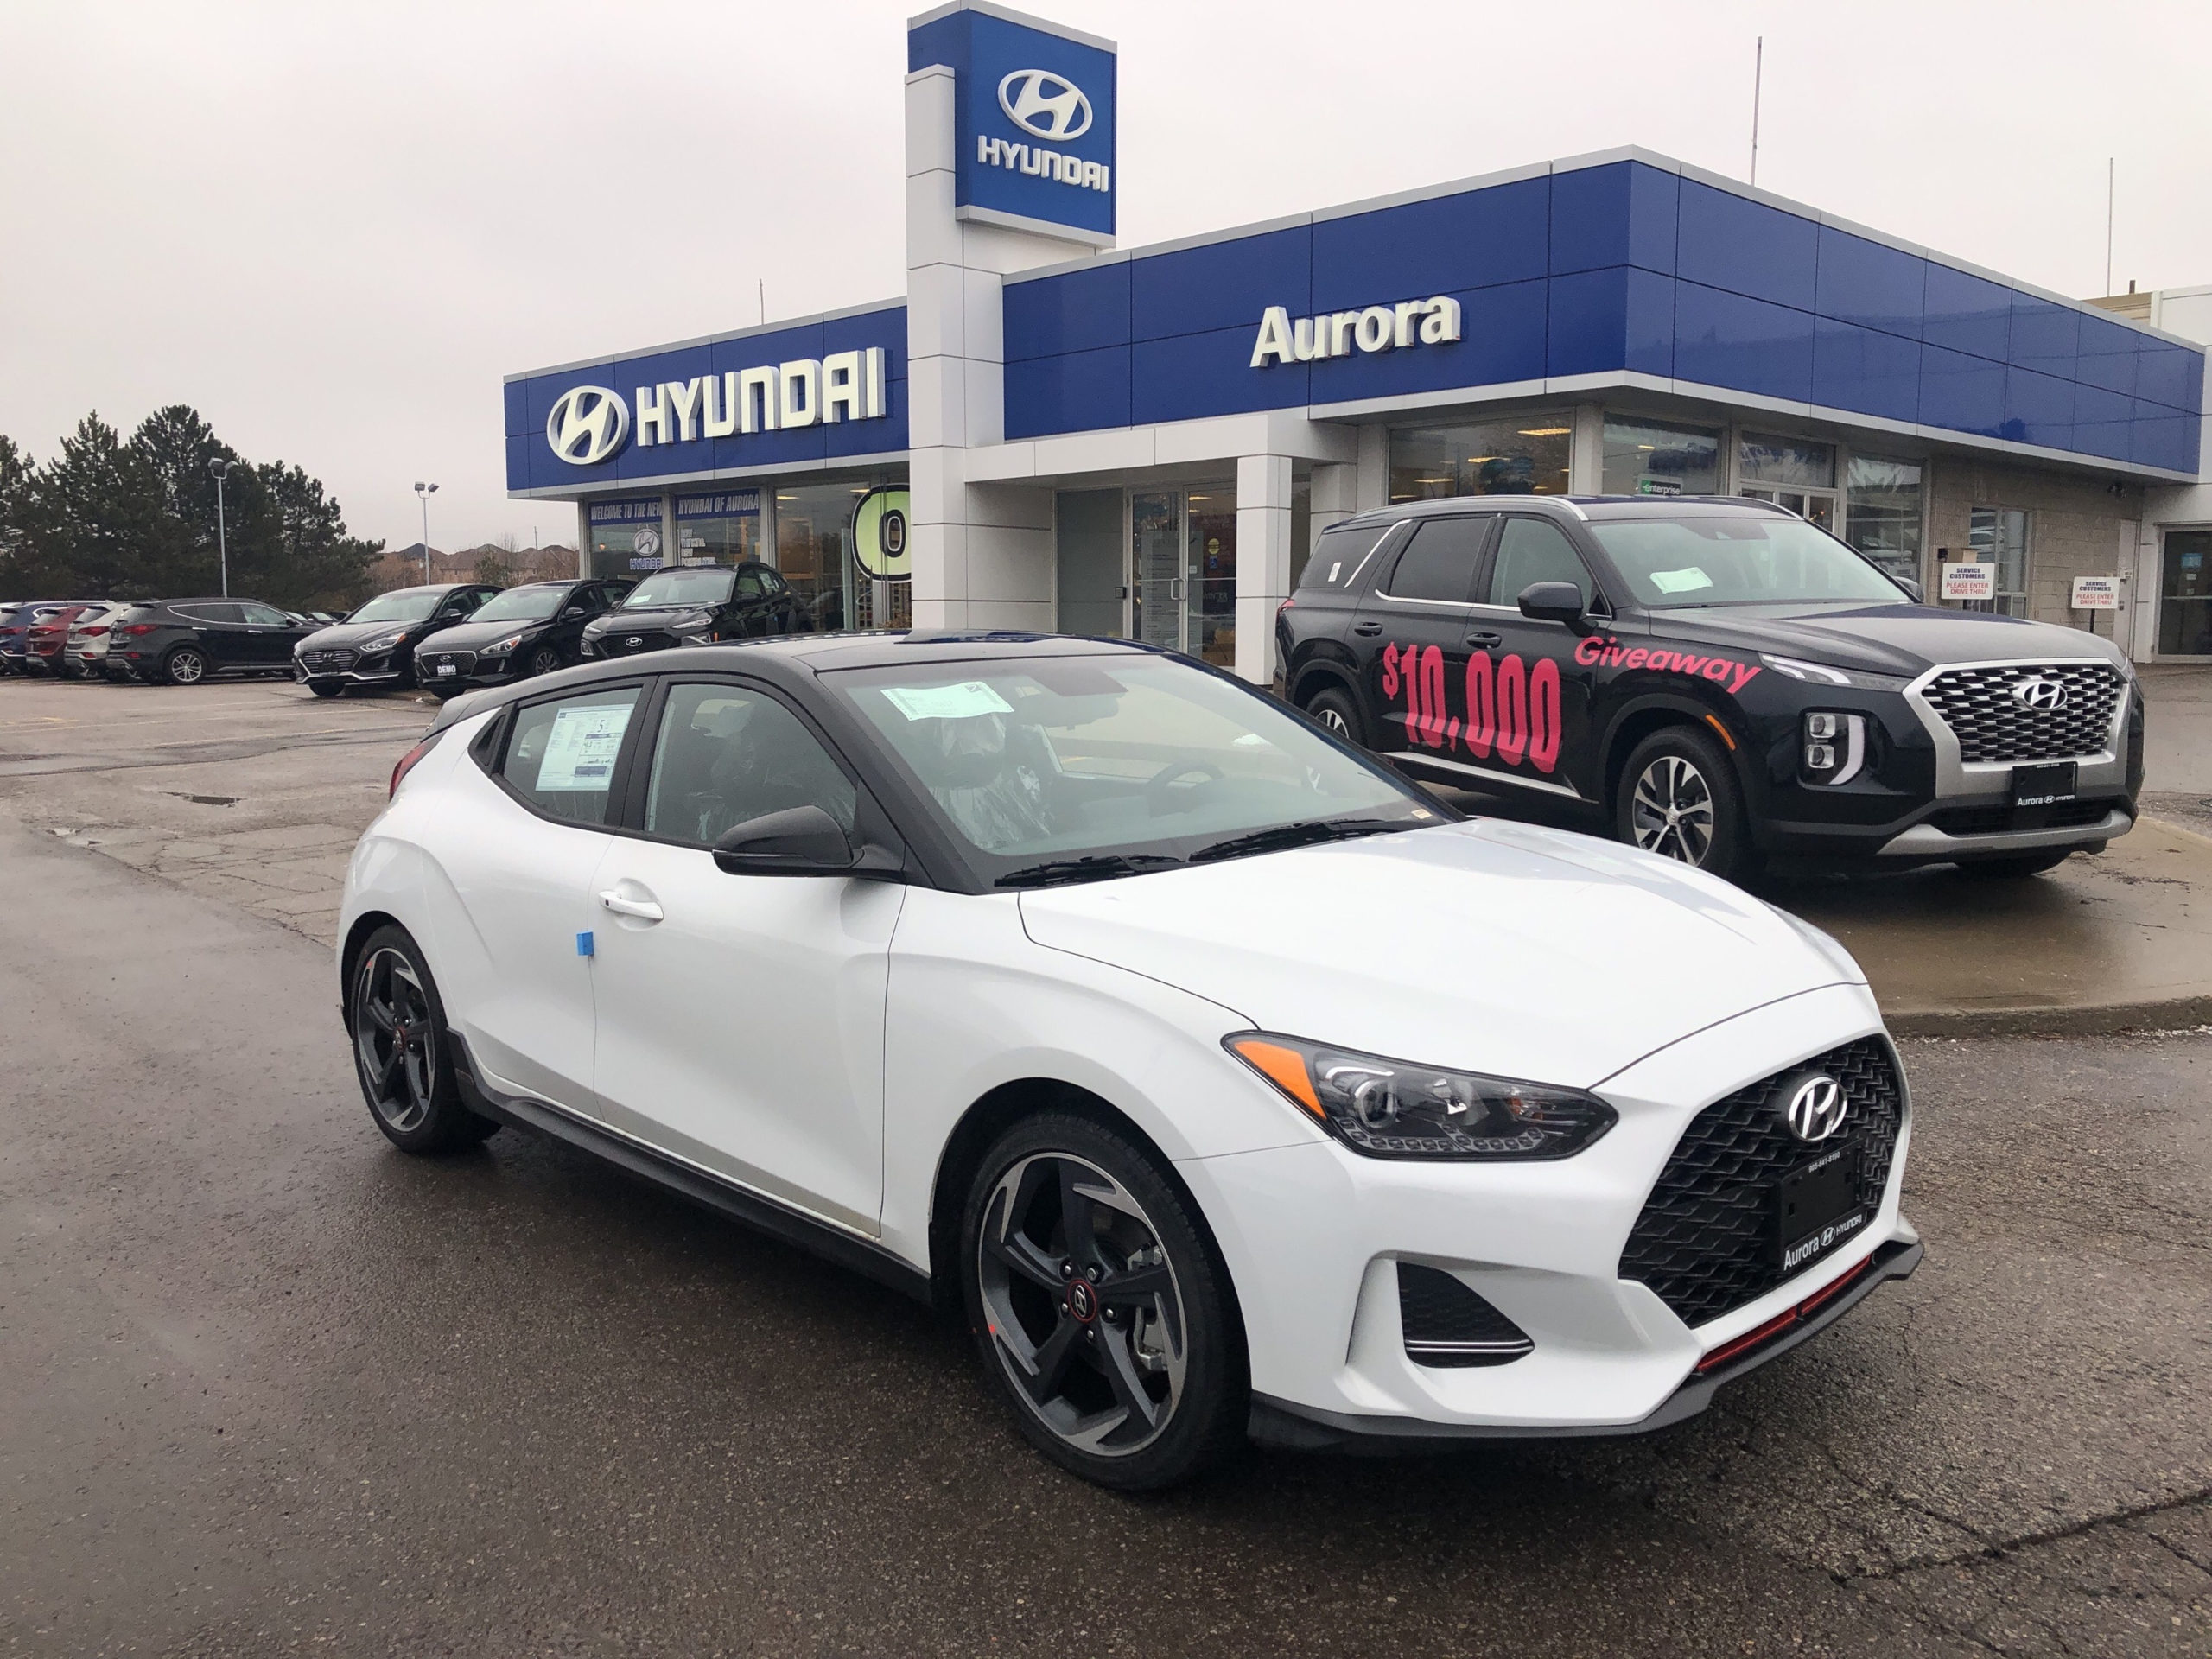 2020 Hyundai Veloster Turbo Fwd Manual - Aurora